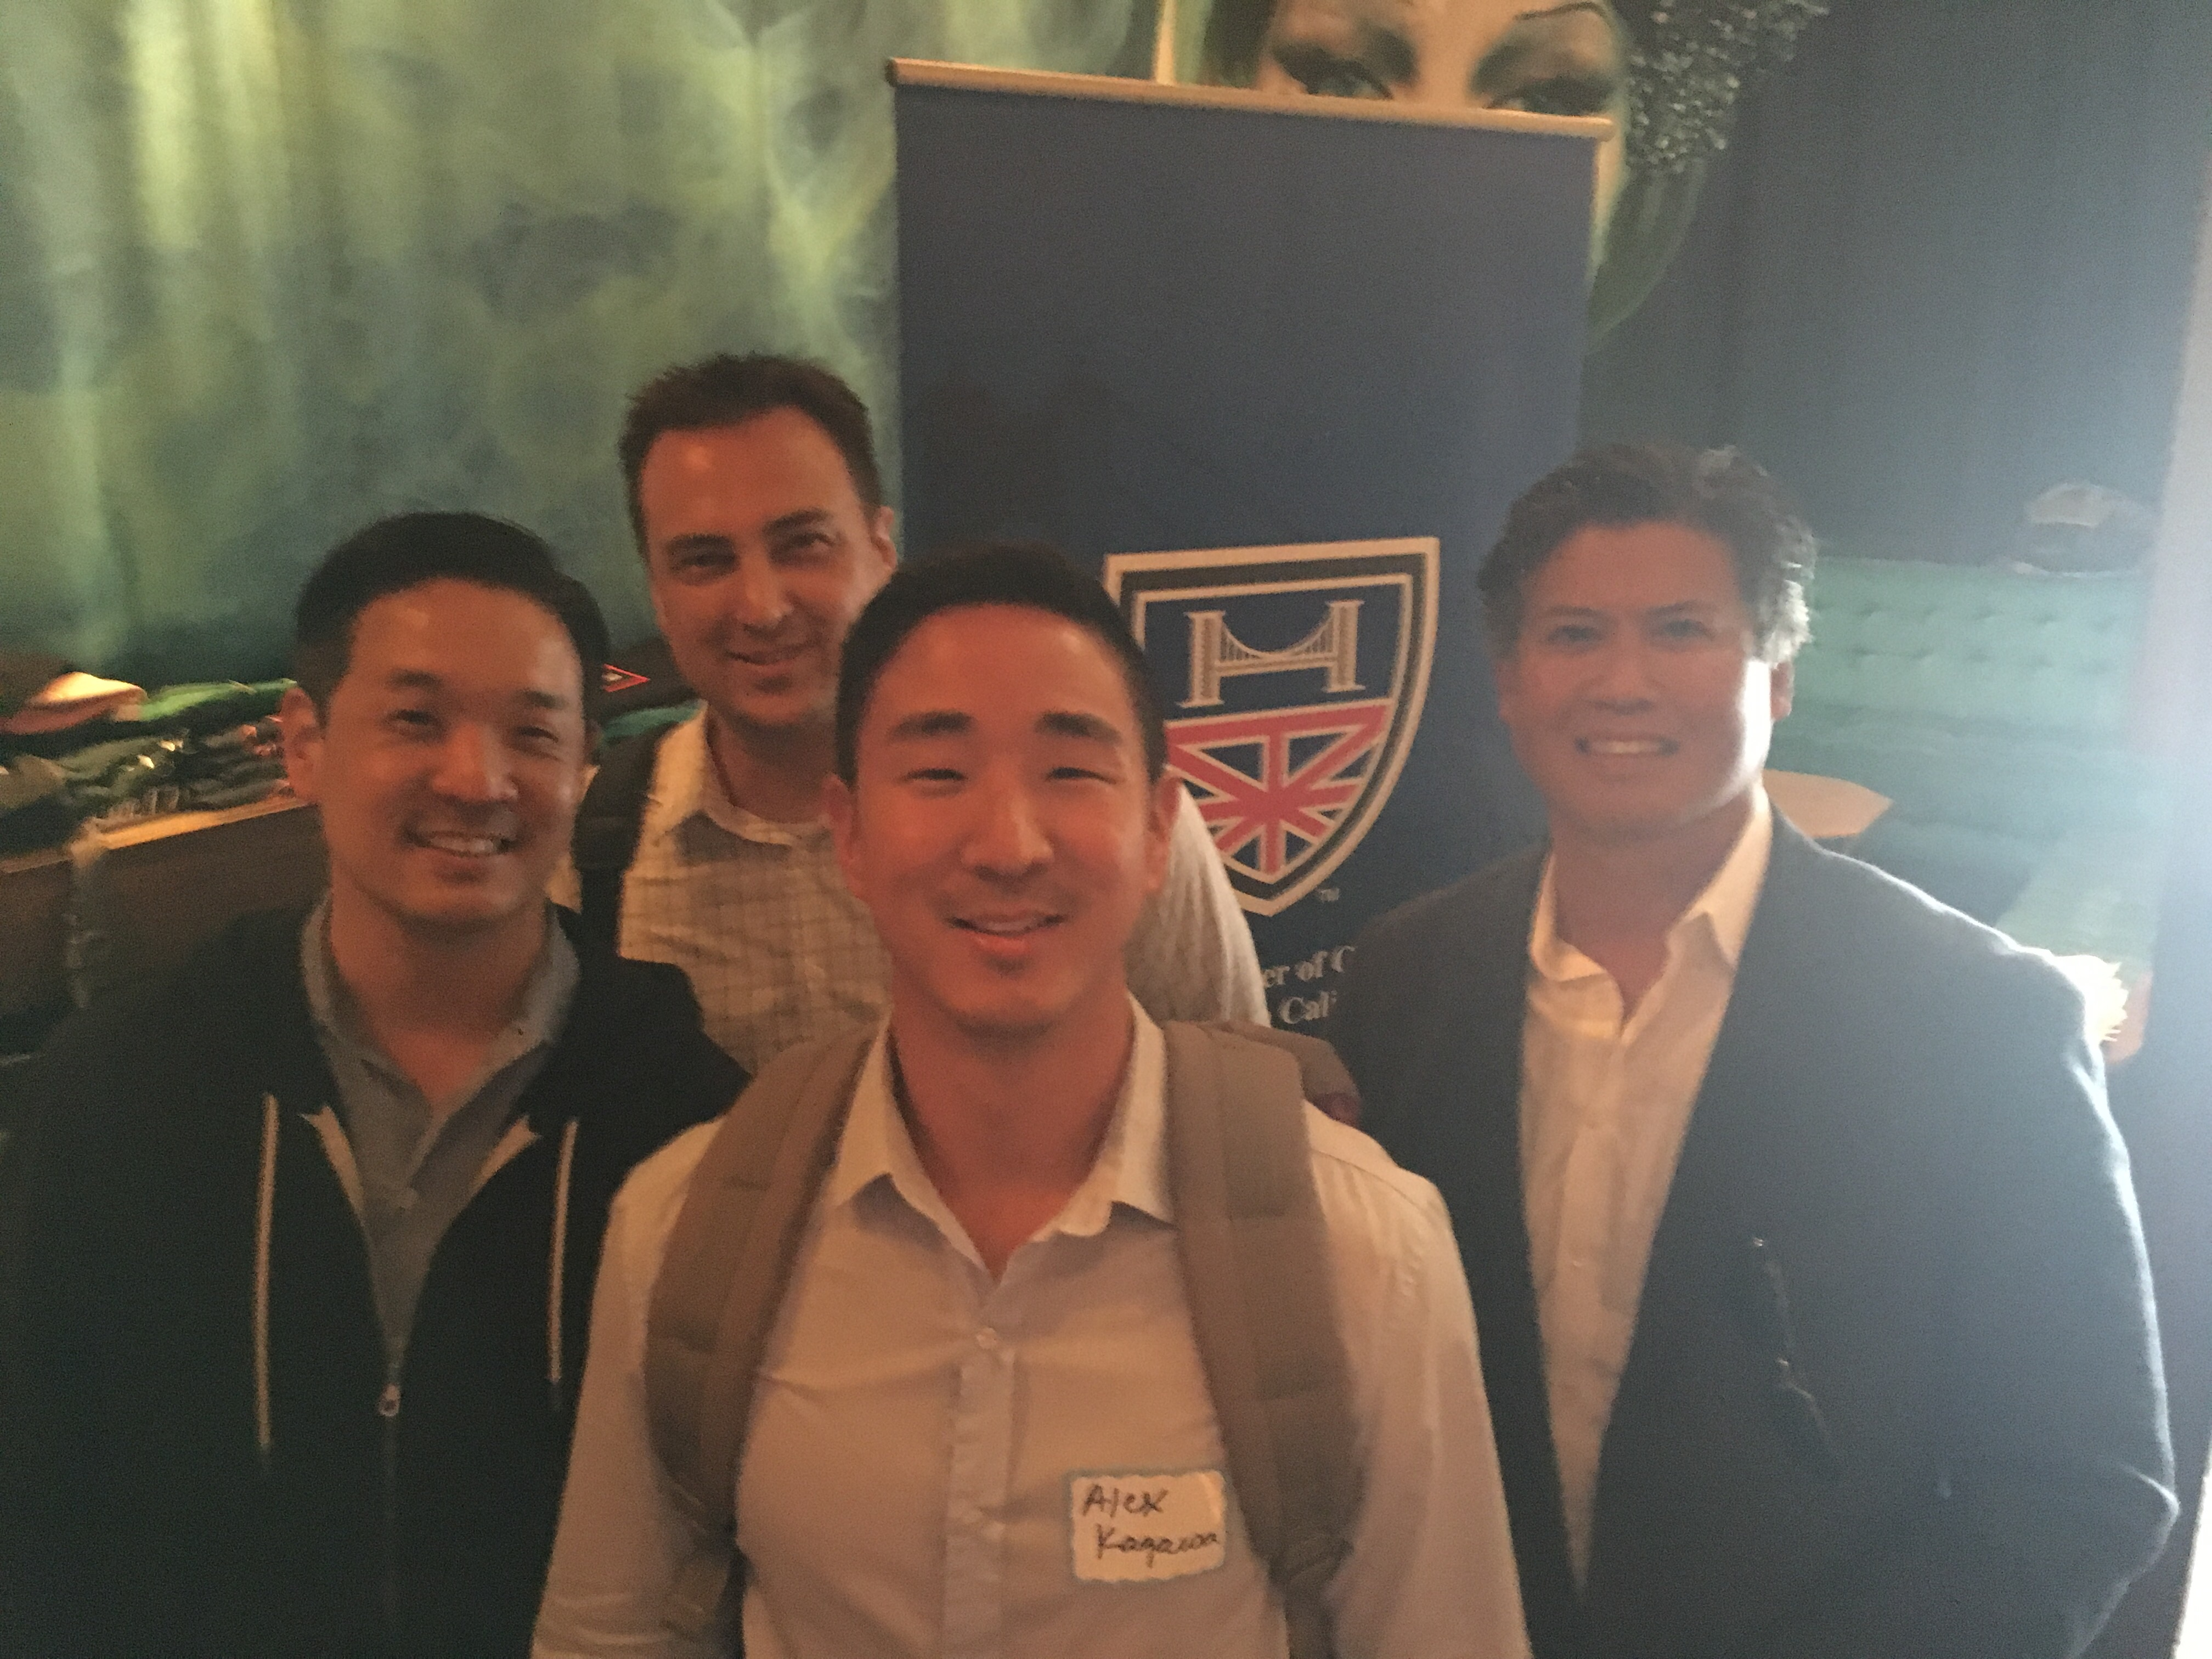 HCCNC Spring Business Mixer in North Beach - Paubox